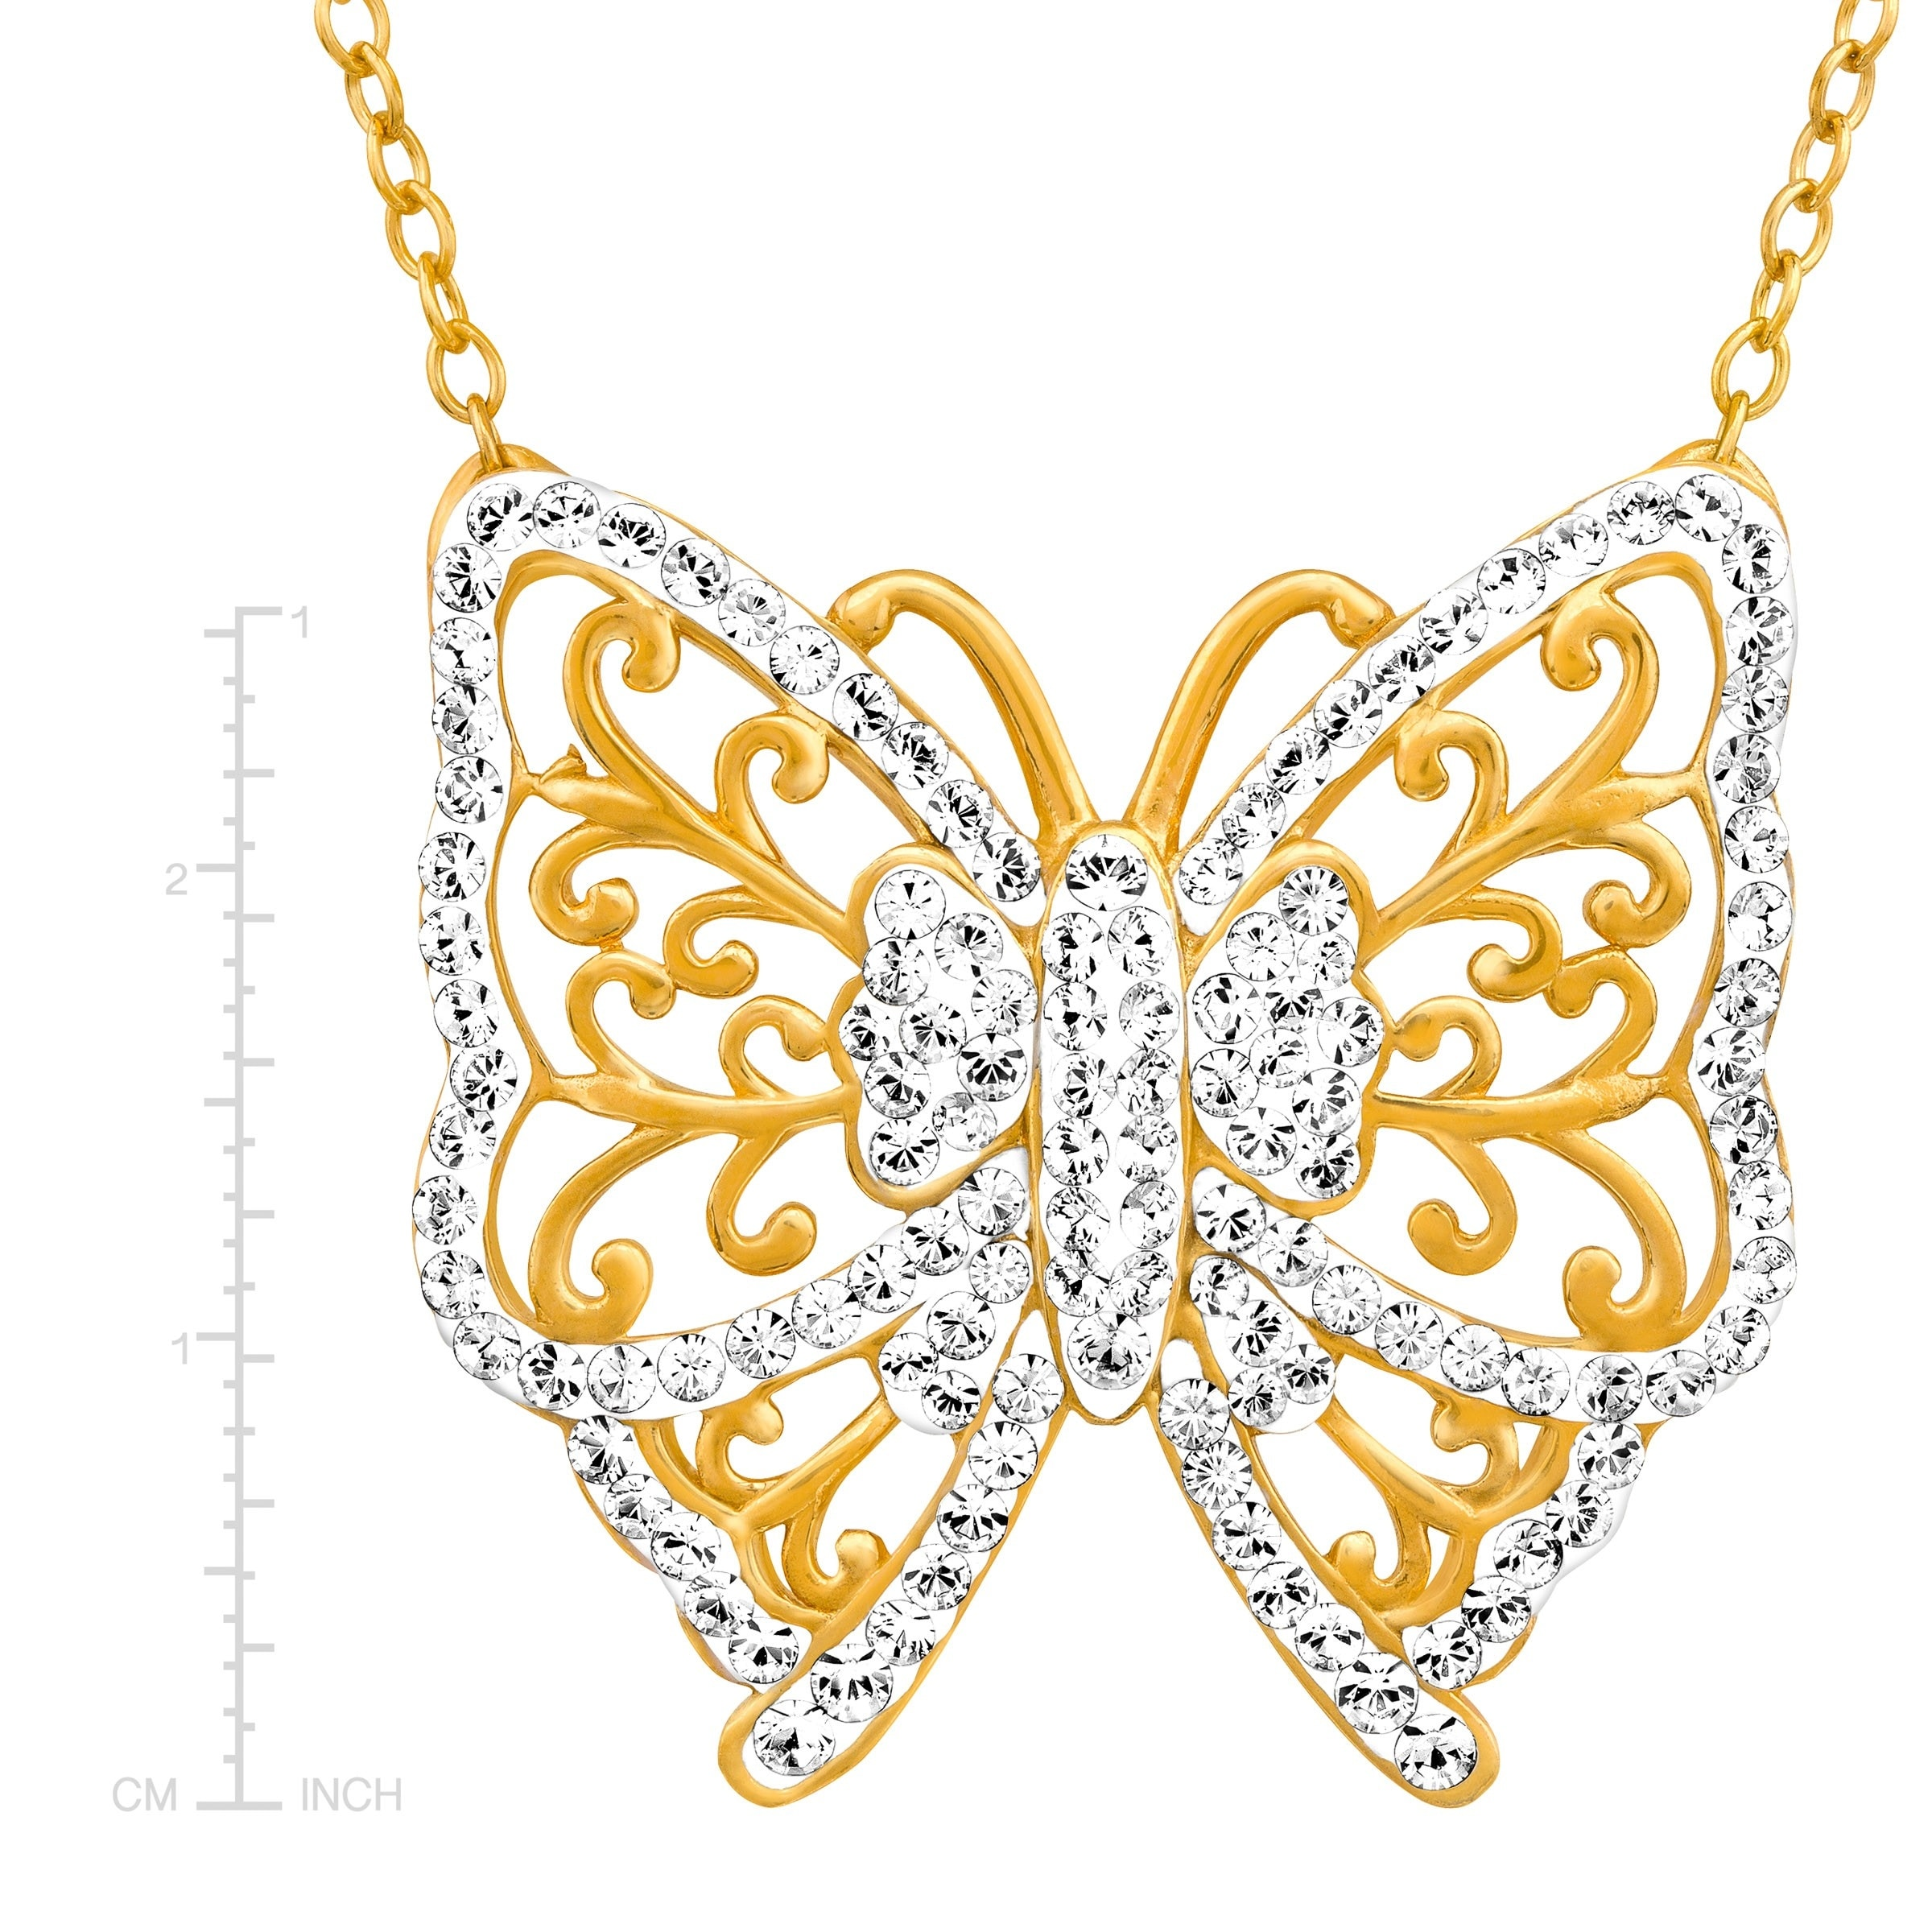 de72712bed9bd Crystaluxe Butterfly Necklace with Swarovski Crystals in 18K Gold-Plated  Sterling Silver